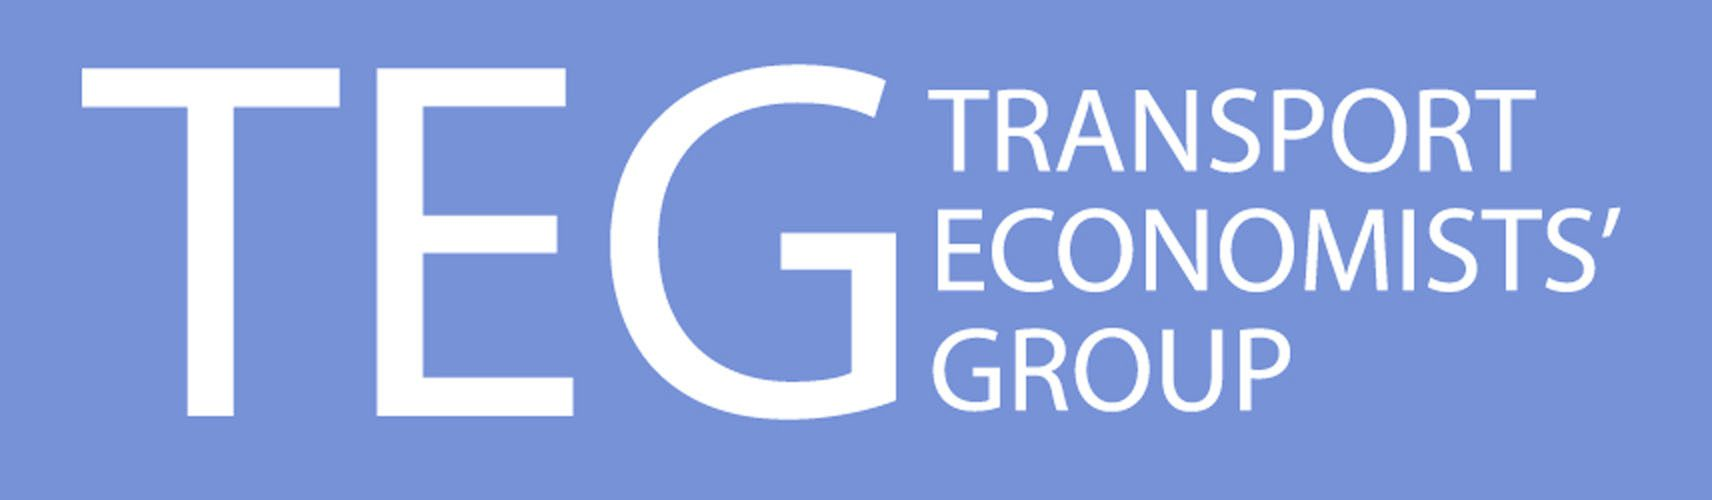 Transport Economists' Group